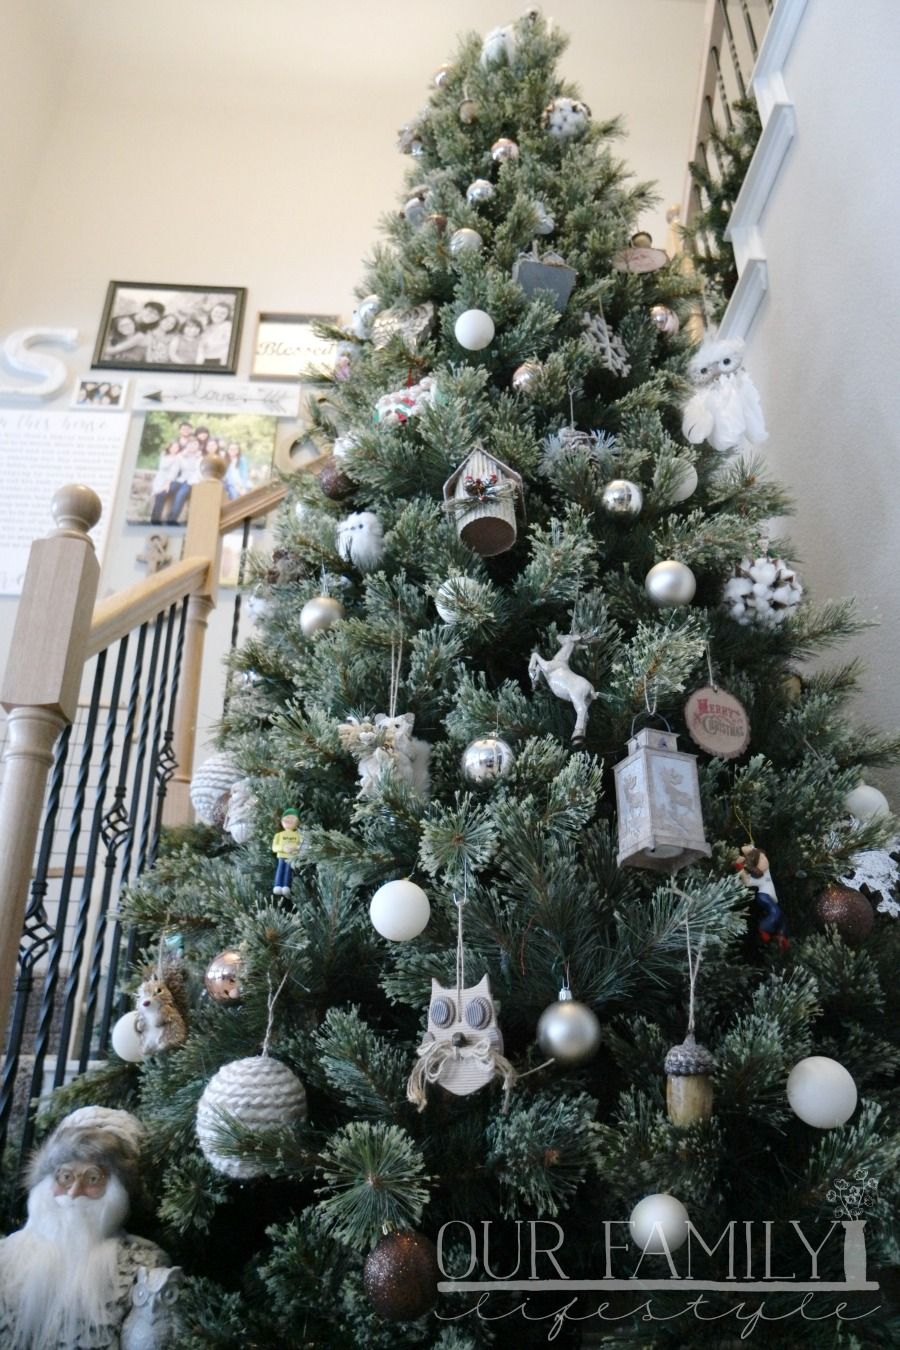 Use These Christmas Tree Decorating Tips To Create A Holiday Your Family Will Love